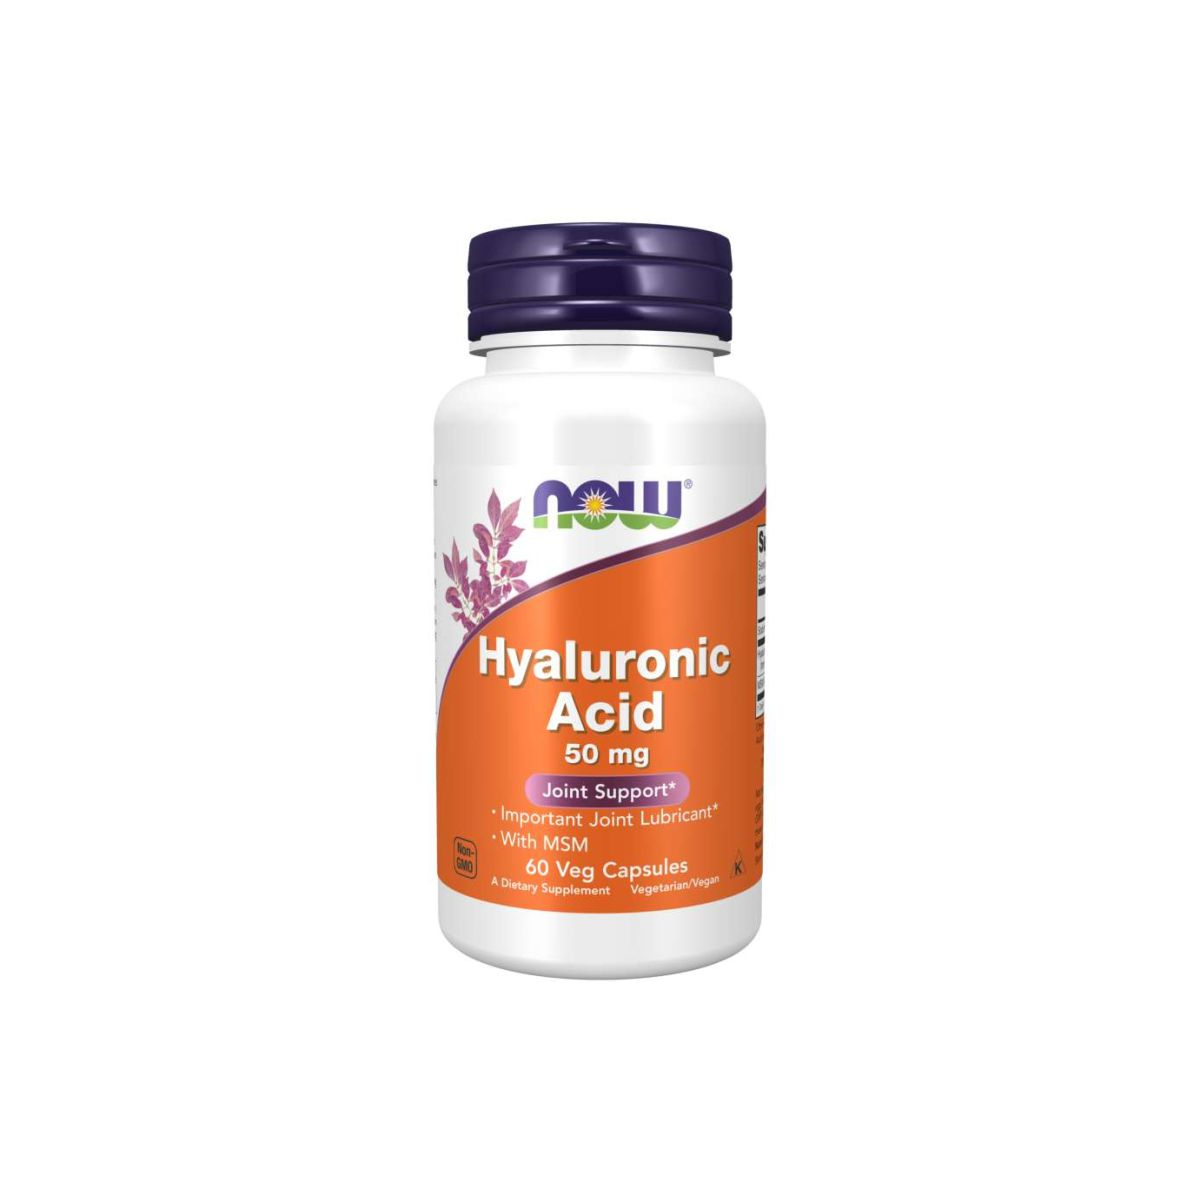 Hyaluronic Acid 50 mg 60 Caps - Now Foods